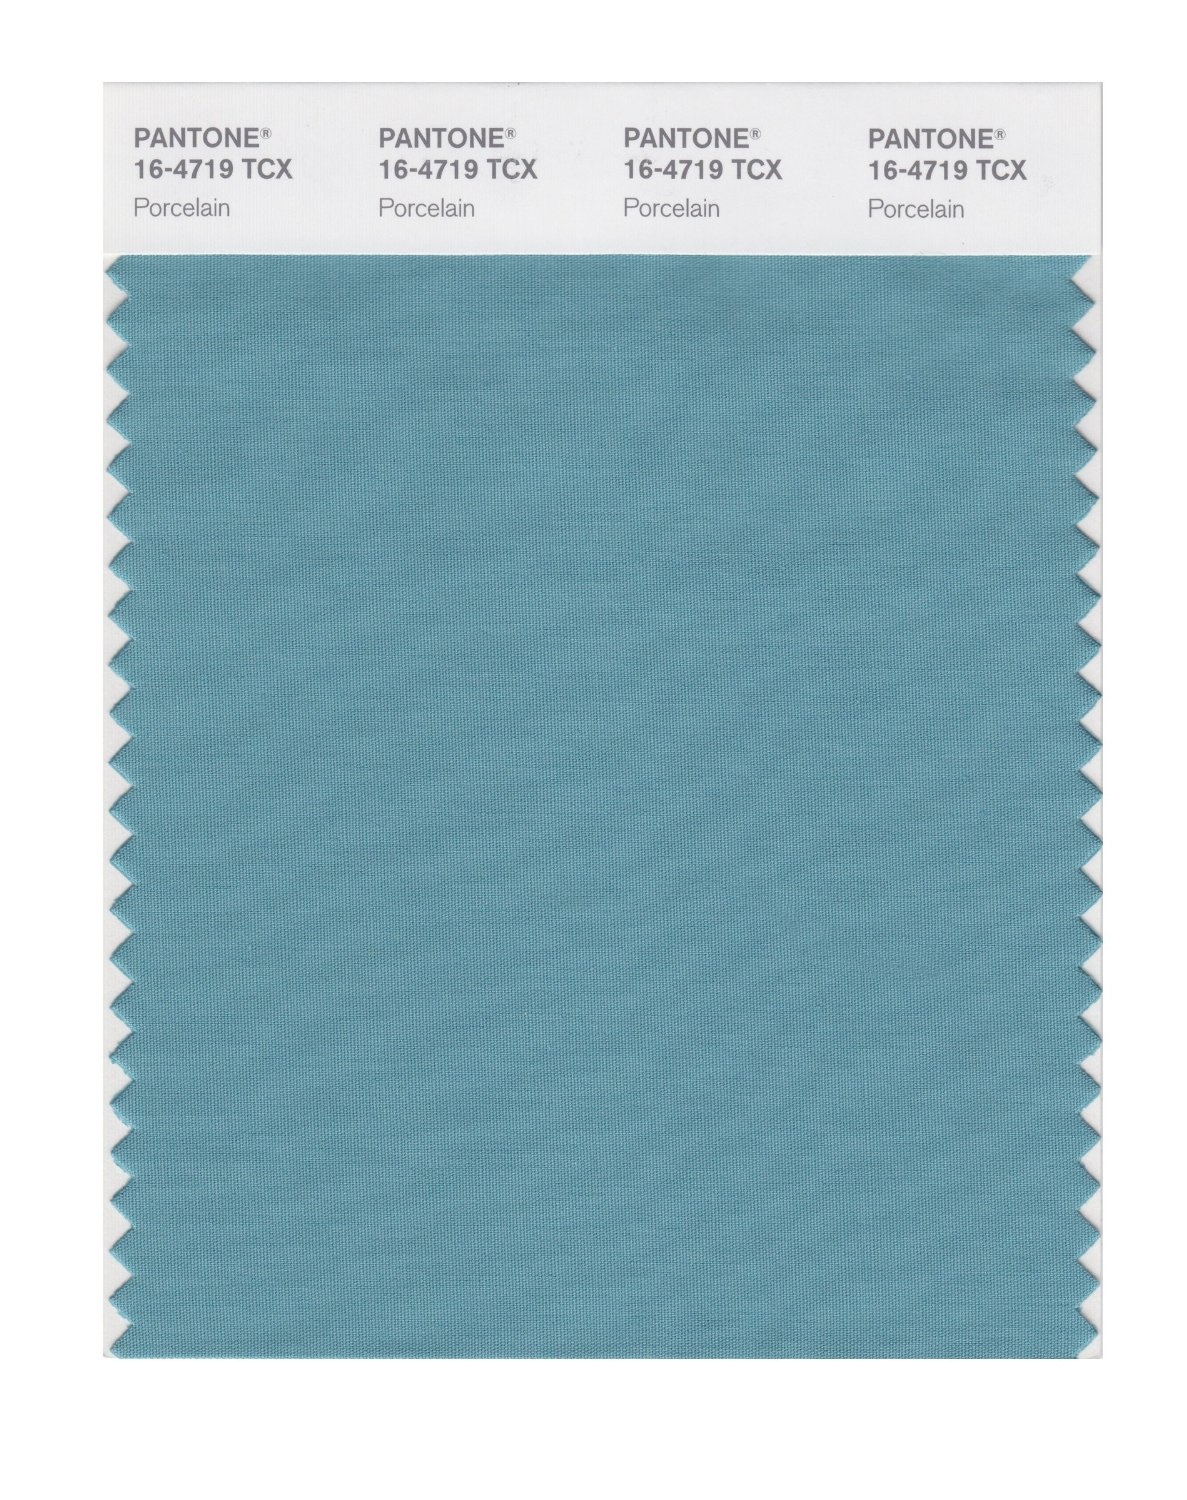 Pantone Smart Swatch 16-4719 Porcelain